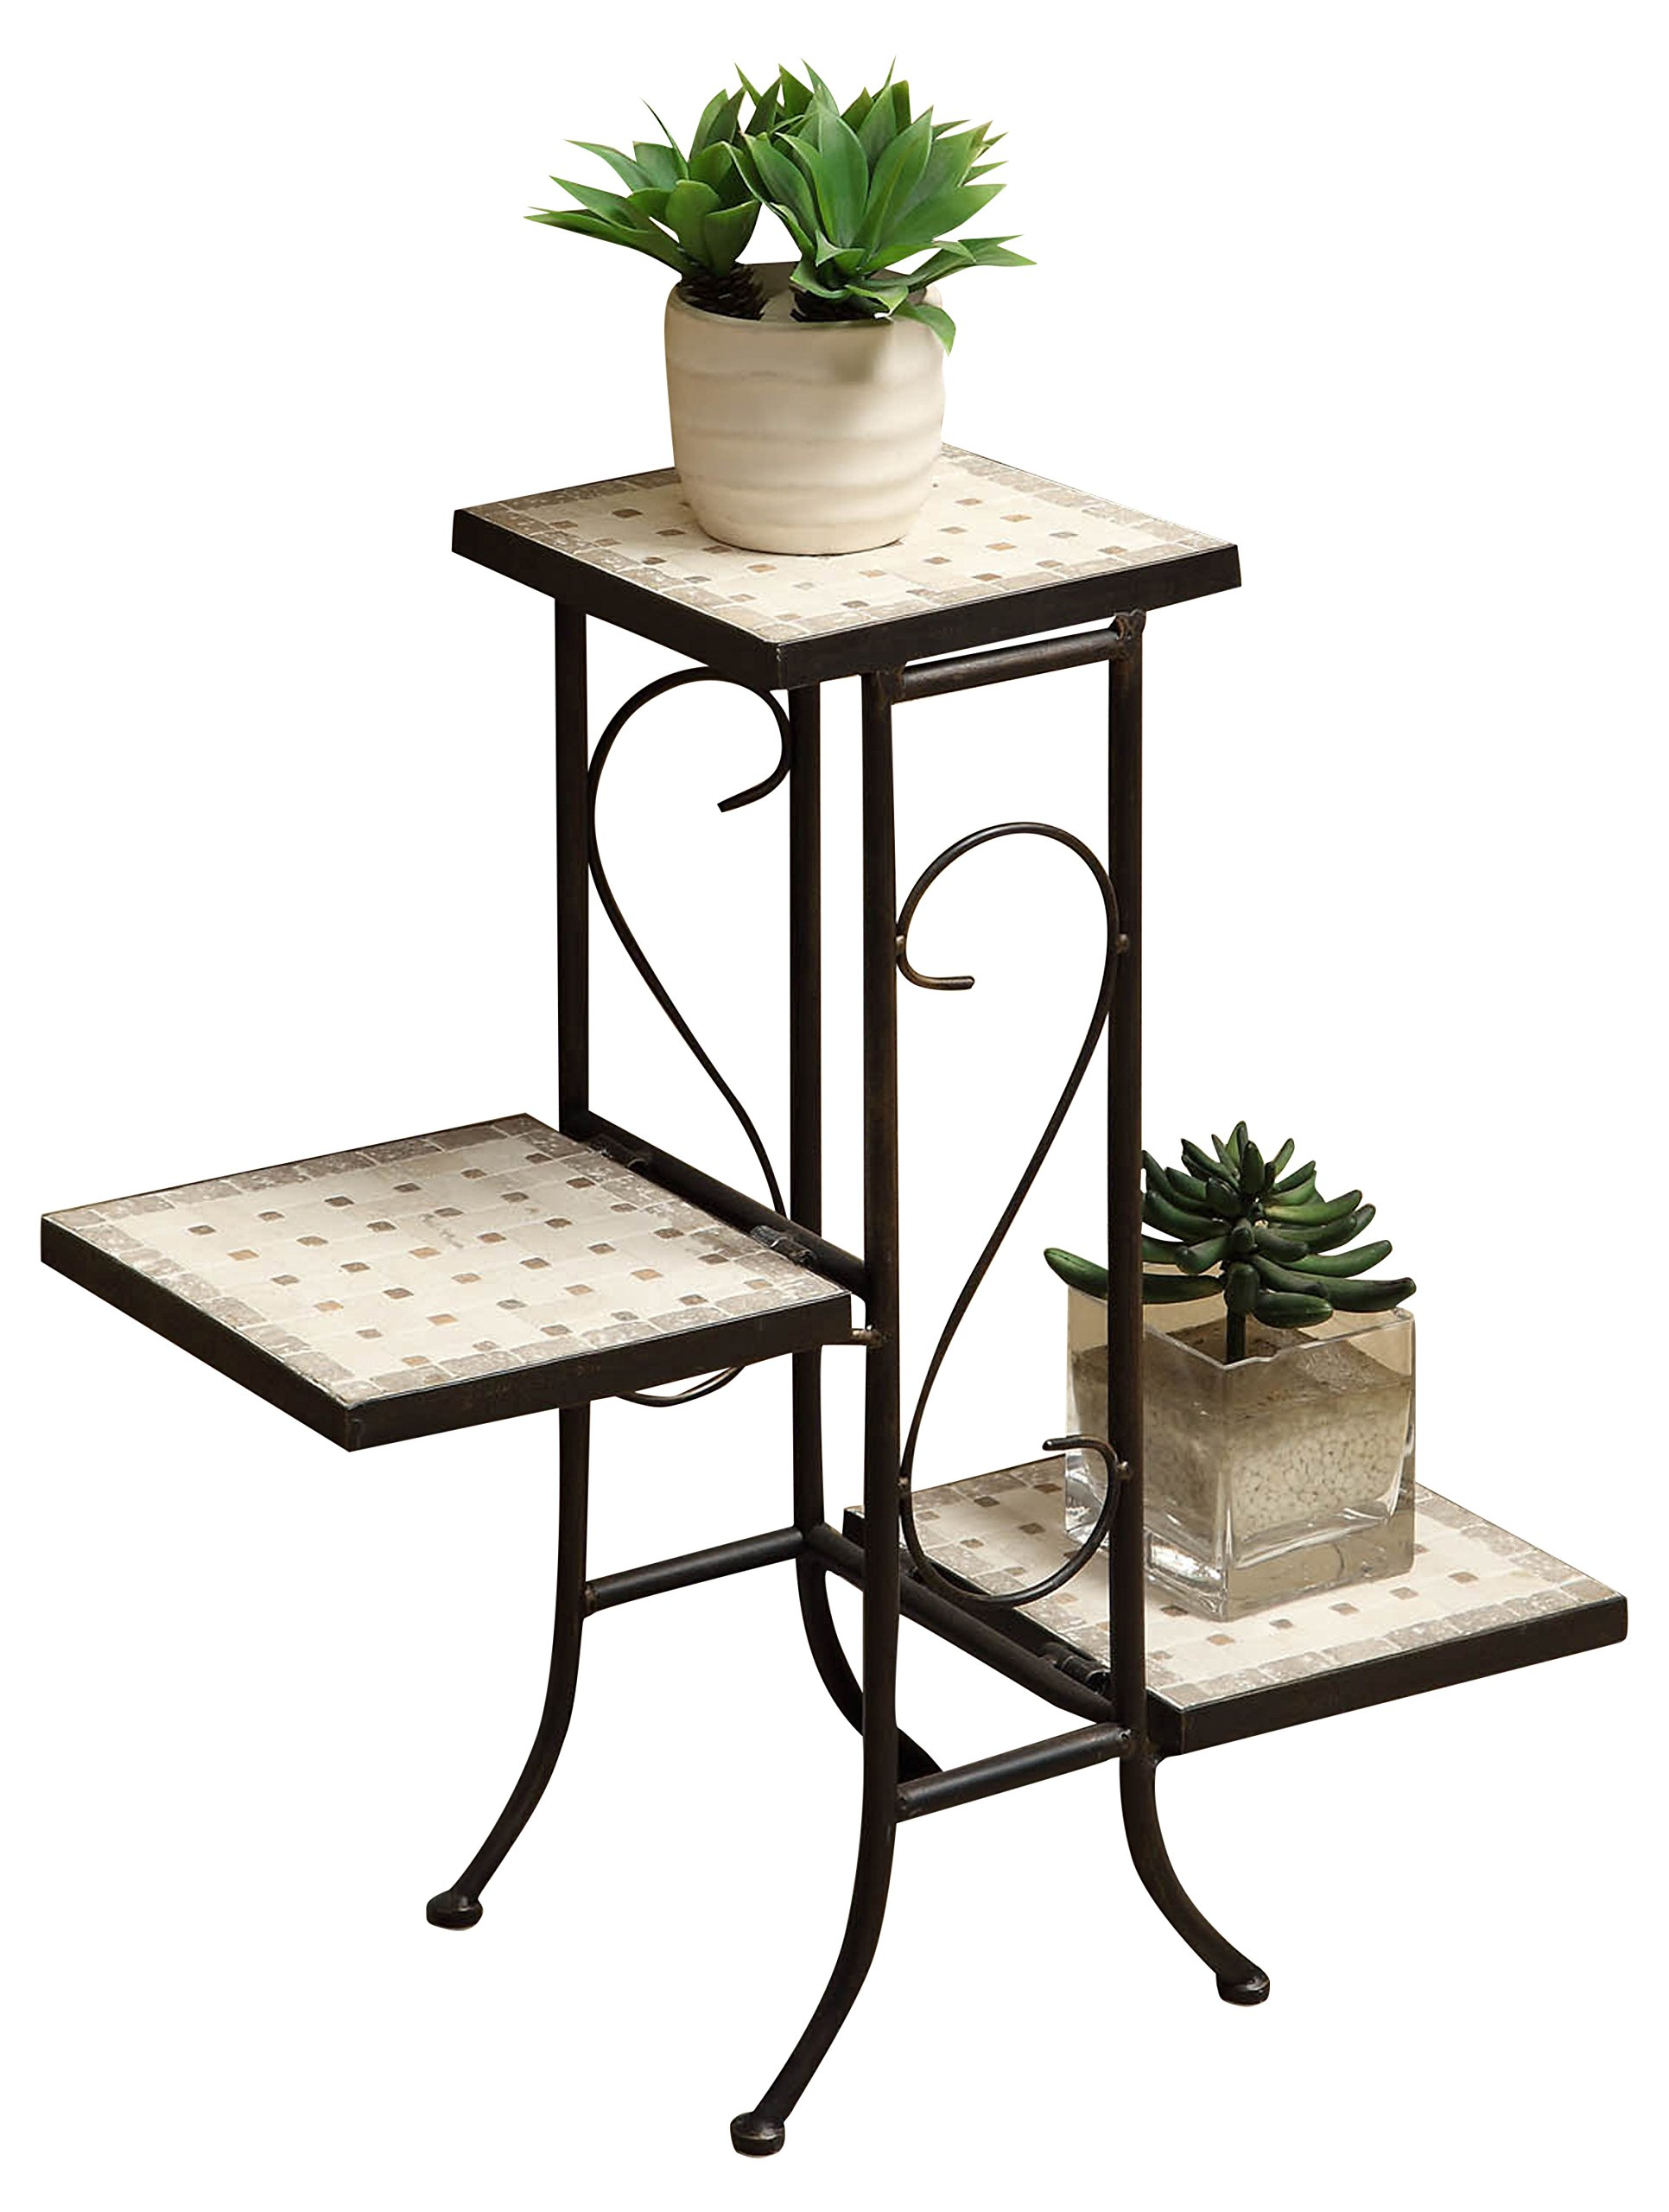 4D Concepts 3 Tier Travertine Plant Stand